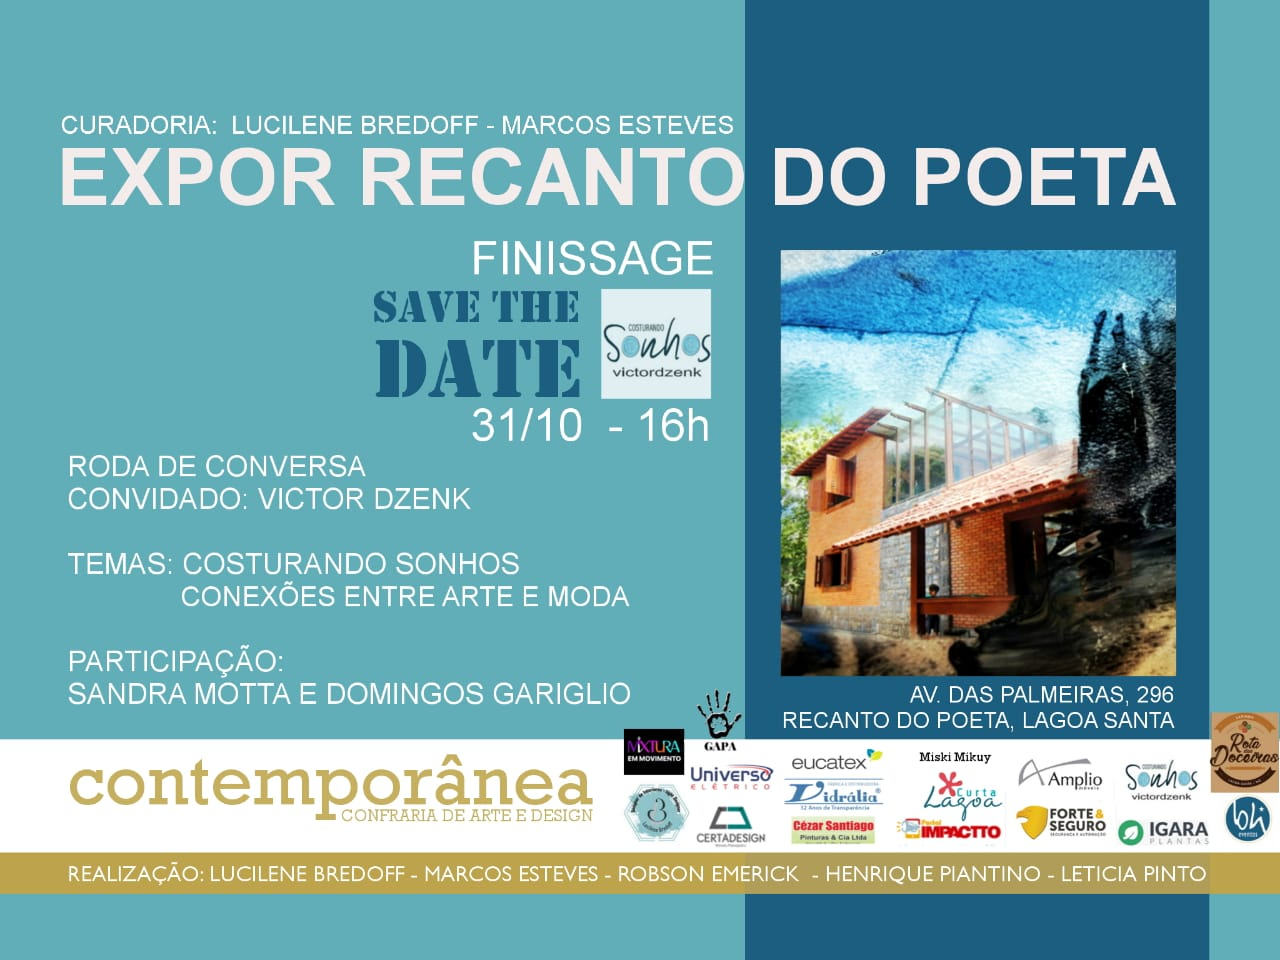 Finissage Expor Recanto do Poeta